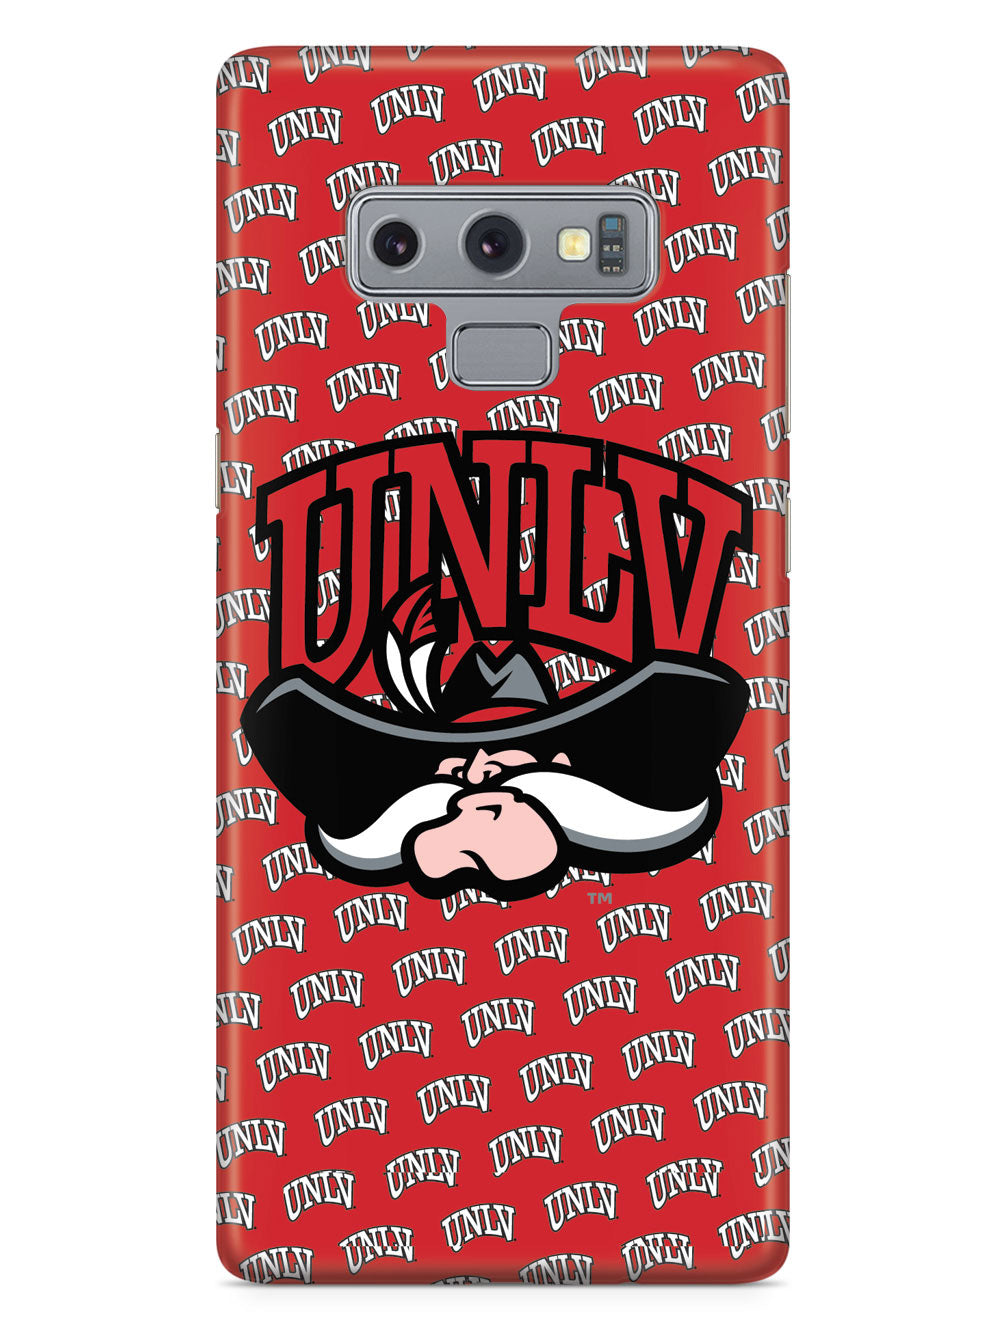 University of Nevada Las Vegas - UNLV Rebels Case